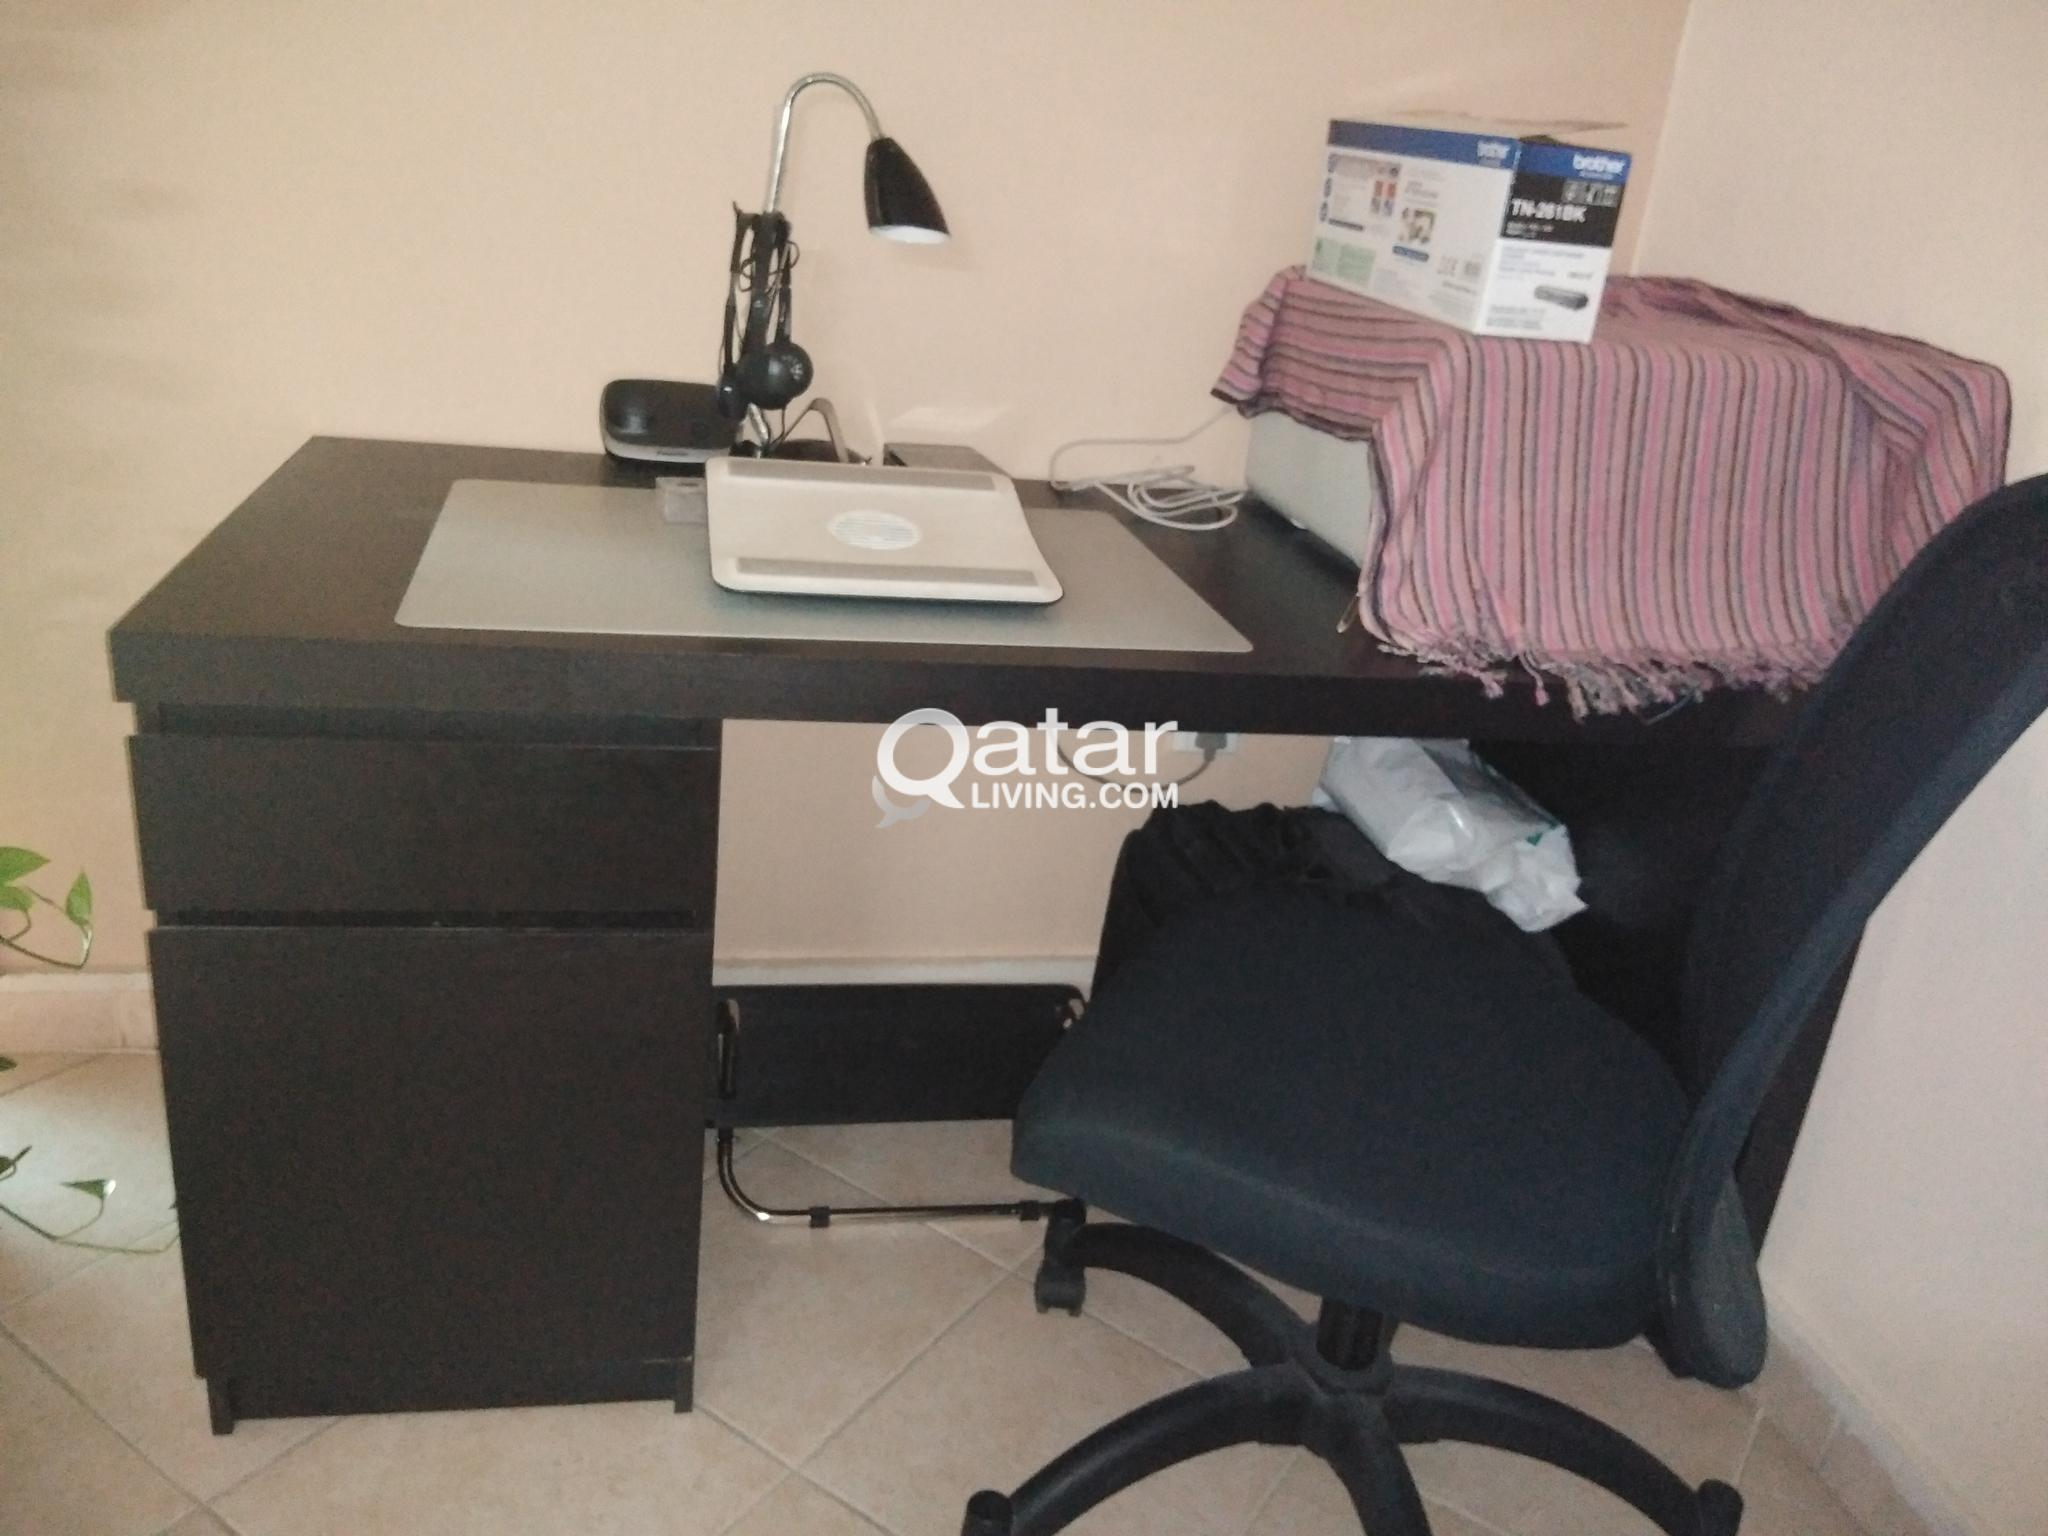 Ikea Office Desk And Chair Qatar Living